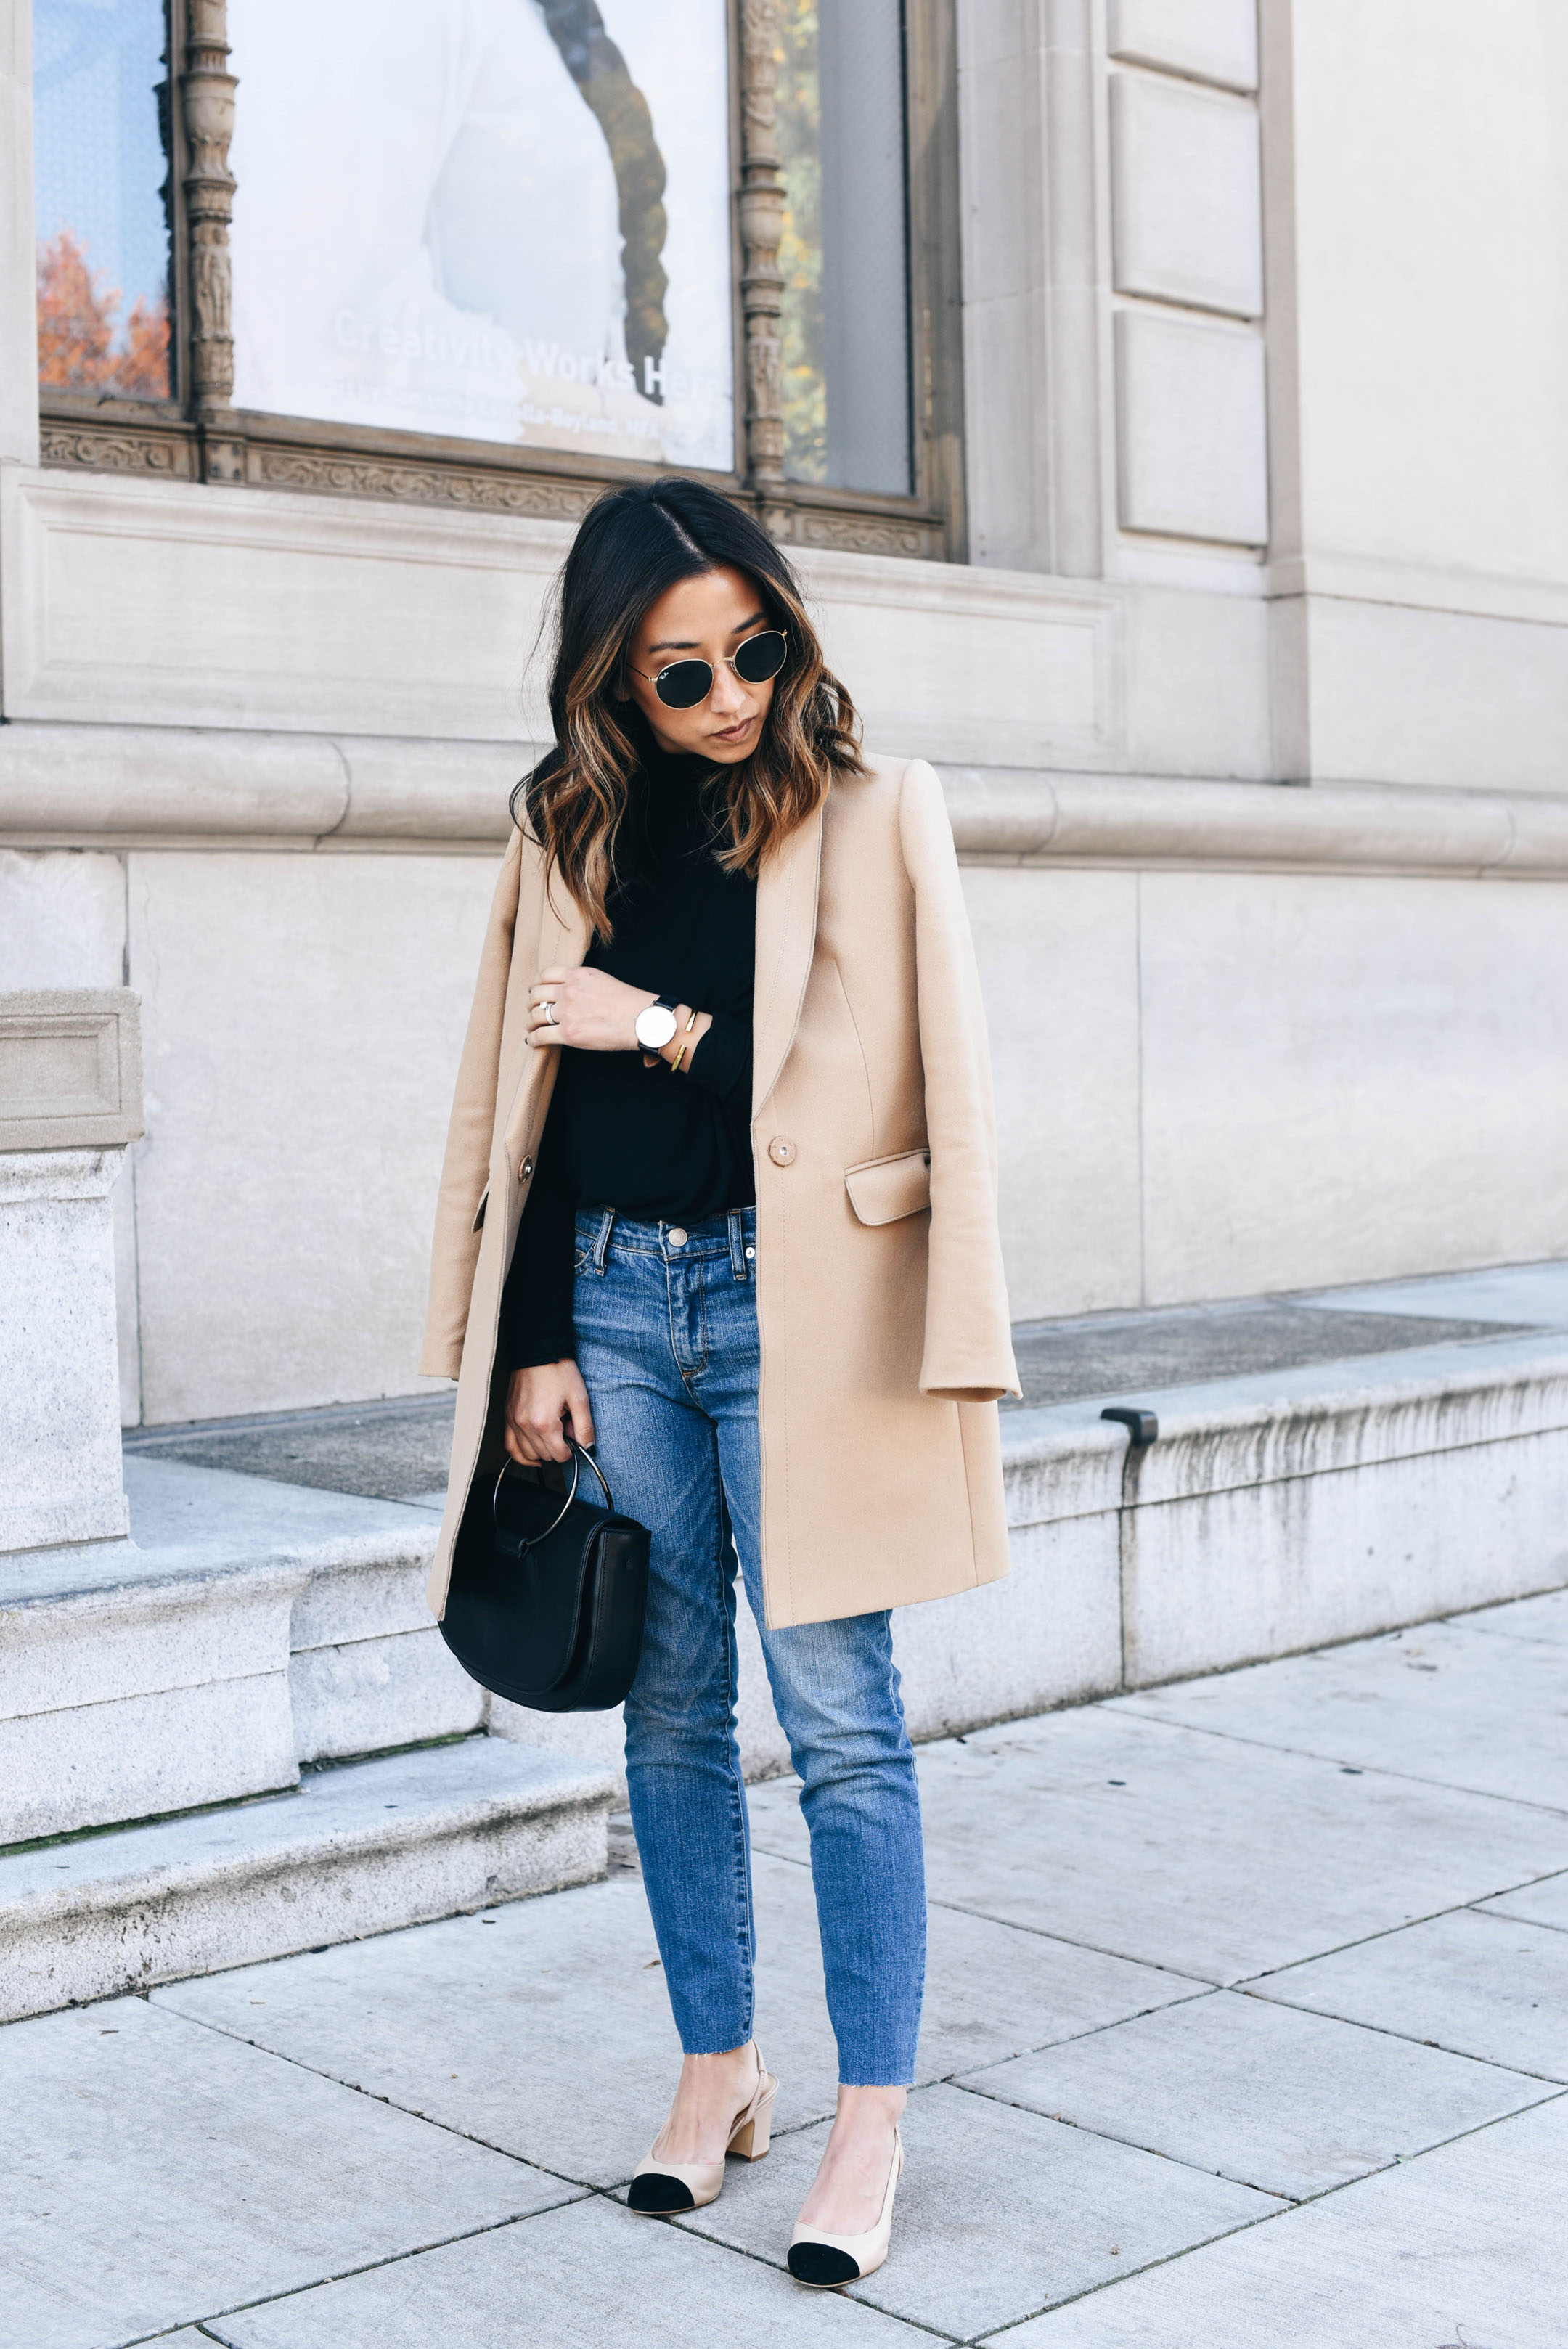 d880c4121af 5 Reasons You Need a Camel Coat in Your Closet - Crystalin Marie